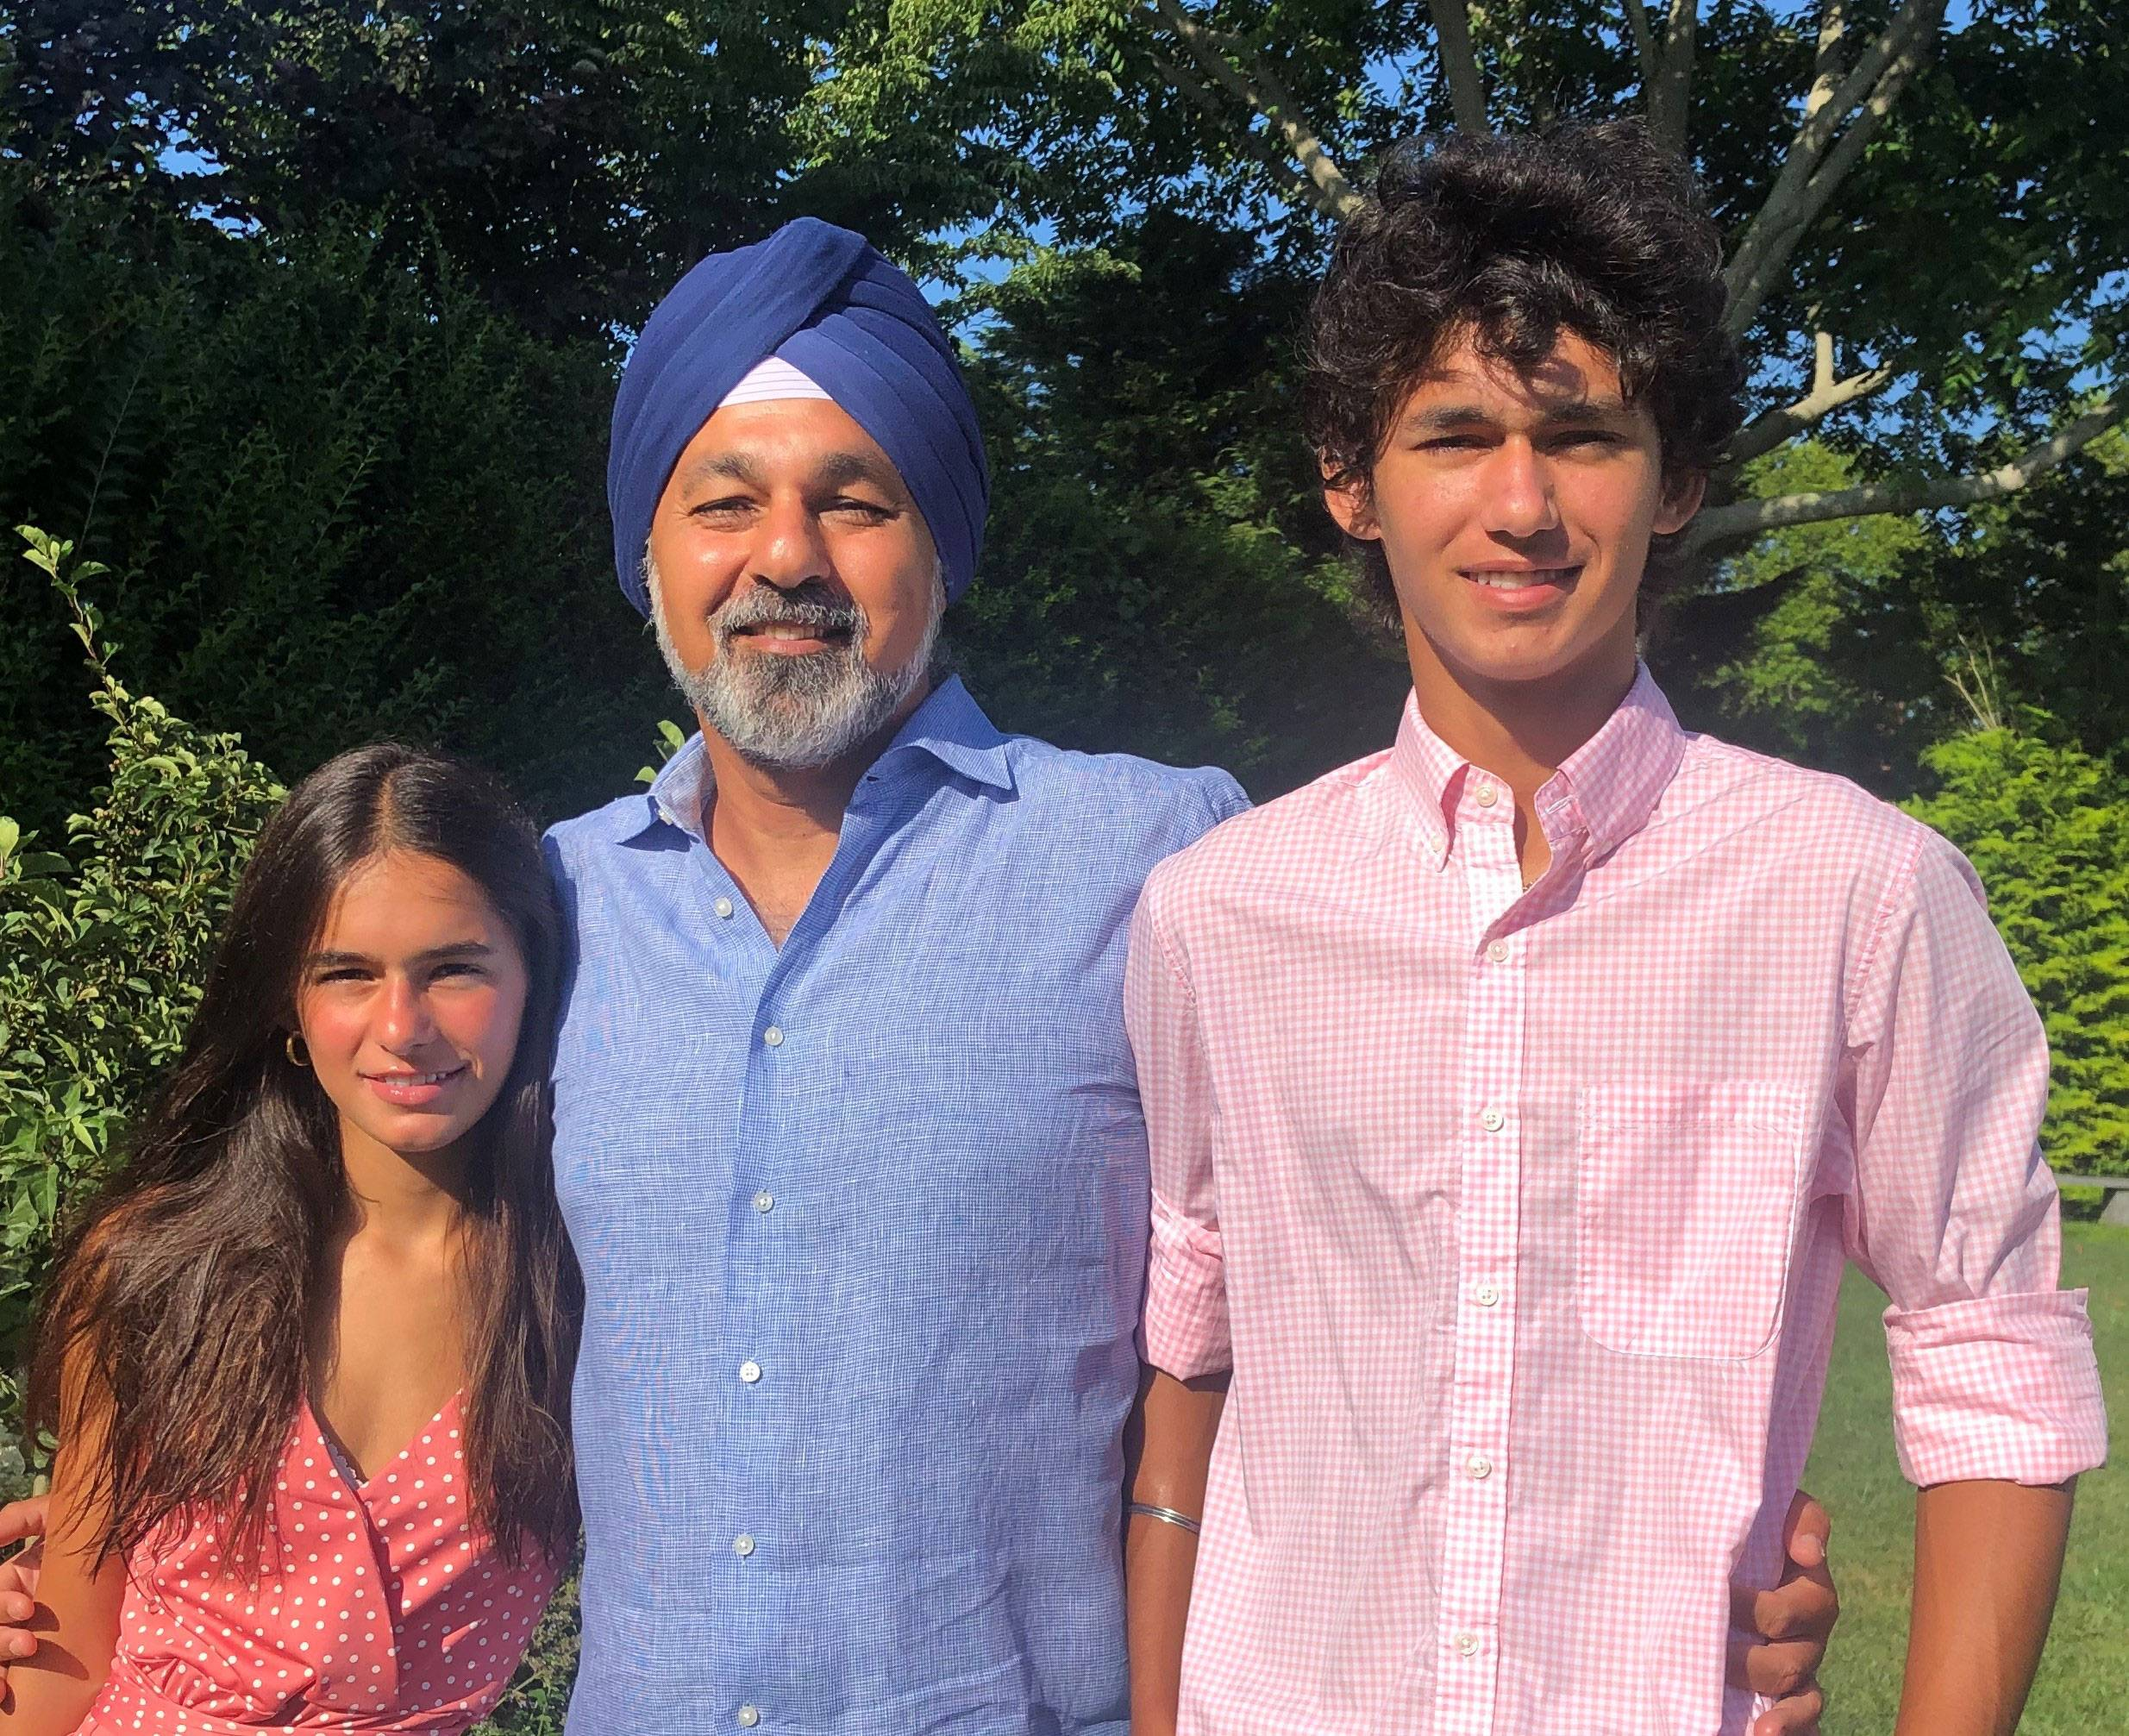 Photo of Jaswinder Pal (JP) Singh with his children, Sophia and Kabir standing outside in front of trees.